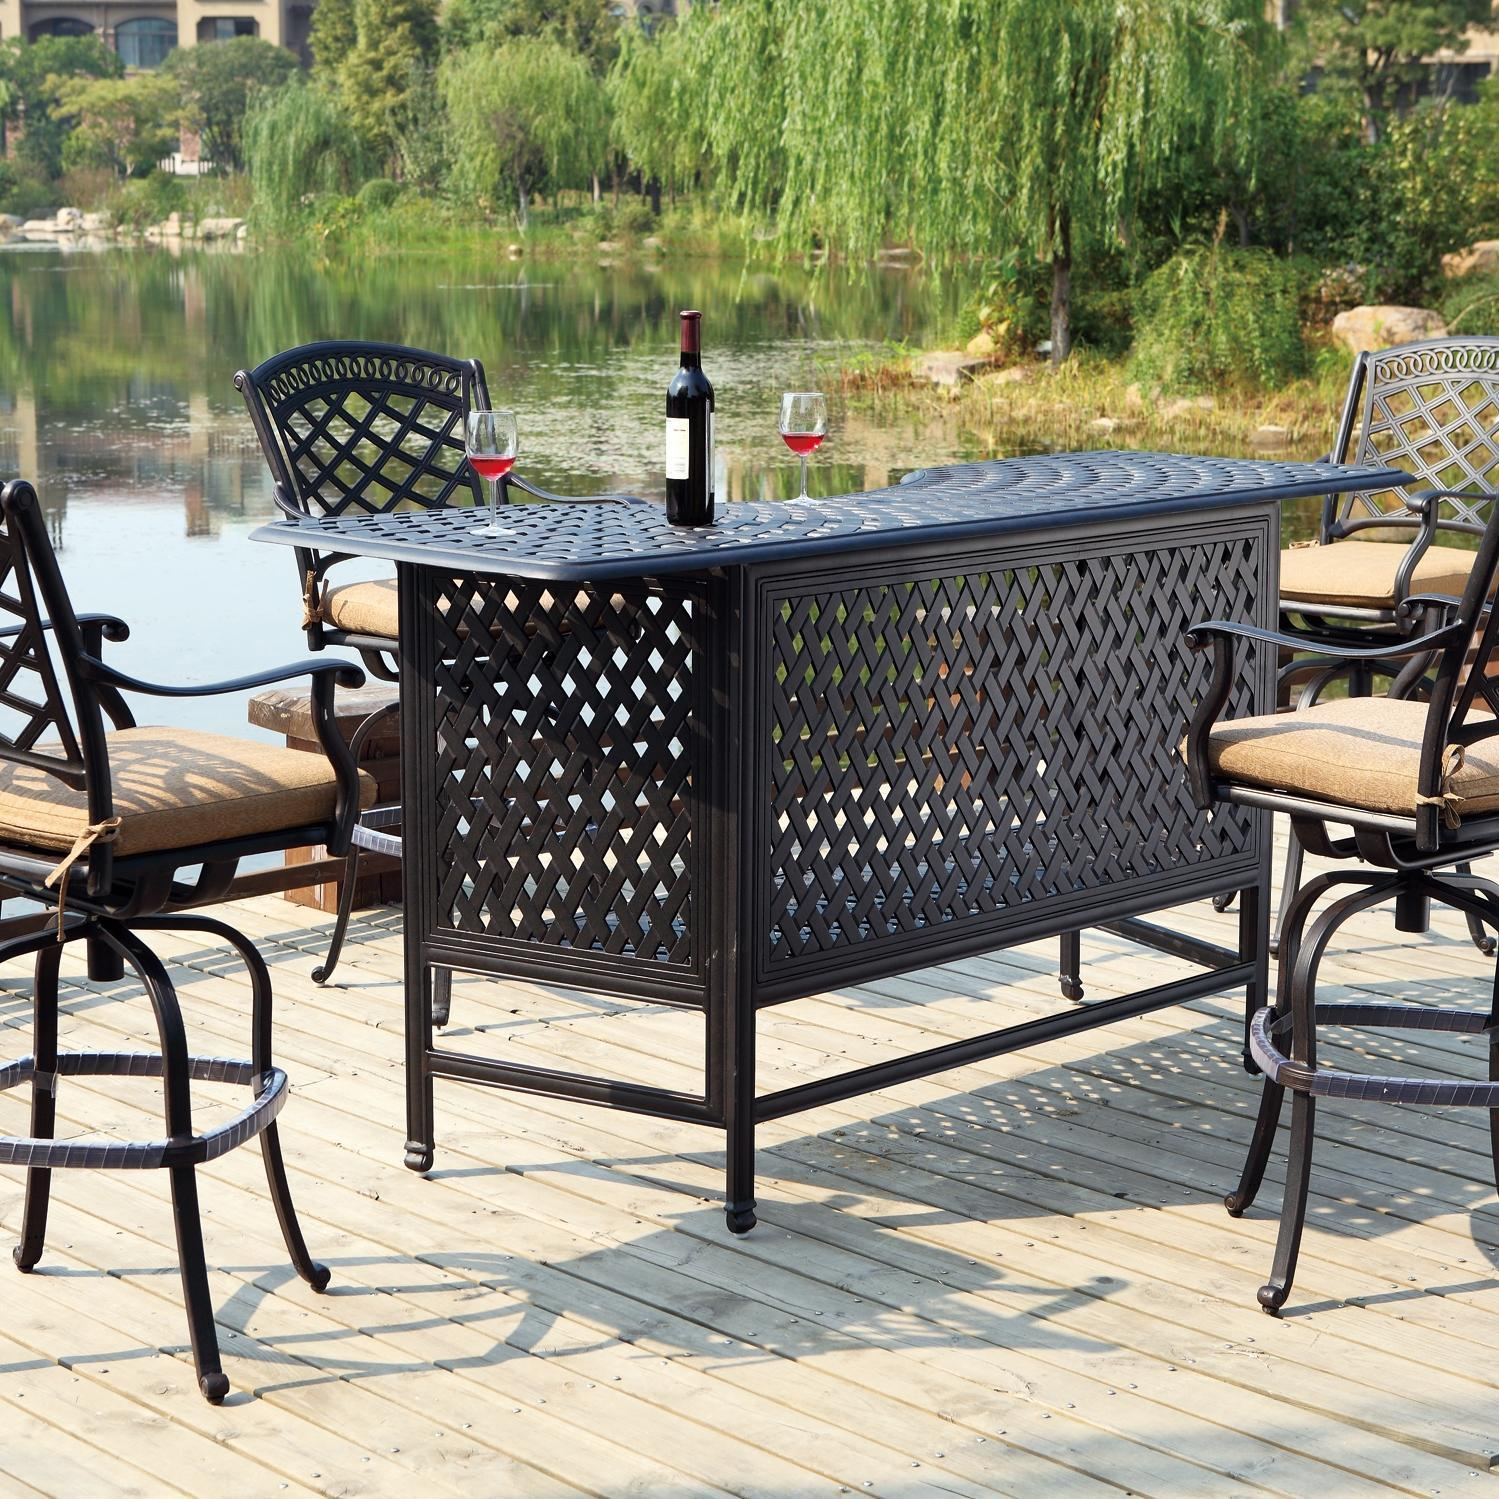 Outdoor Bar sets for a drink under the sun!